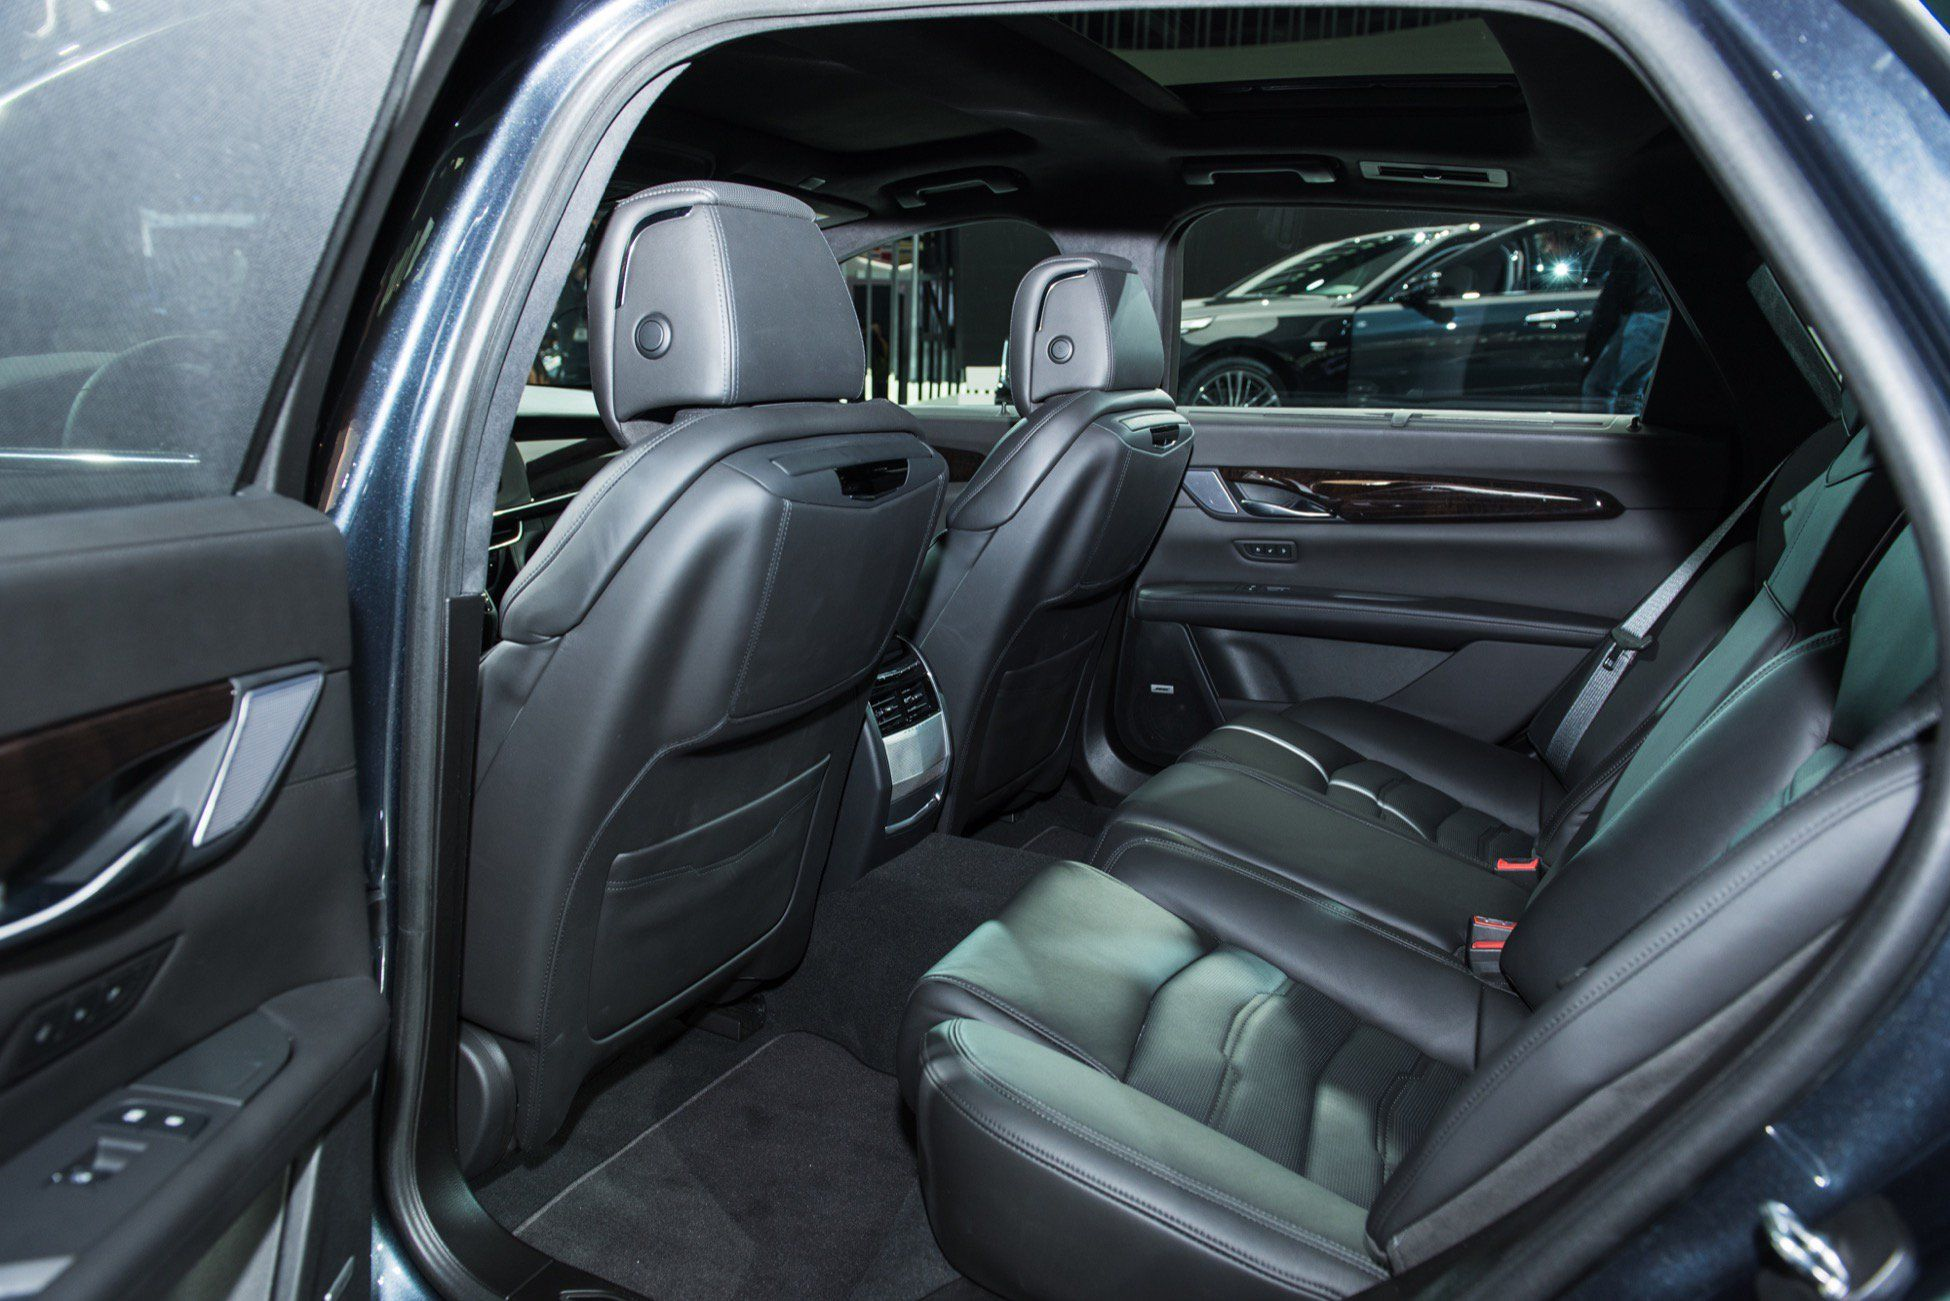 2019 cadillac ct6 refresh live photo gallery gm. Black Bedroom Furniture Sets. Home Design Ideas